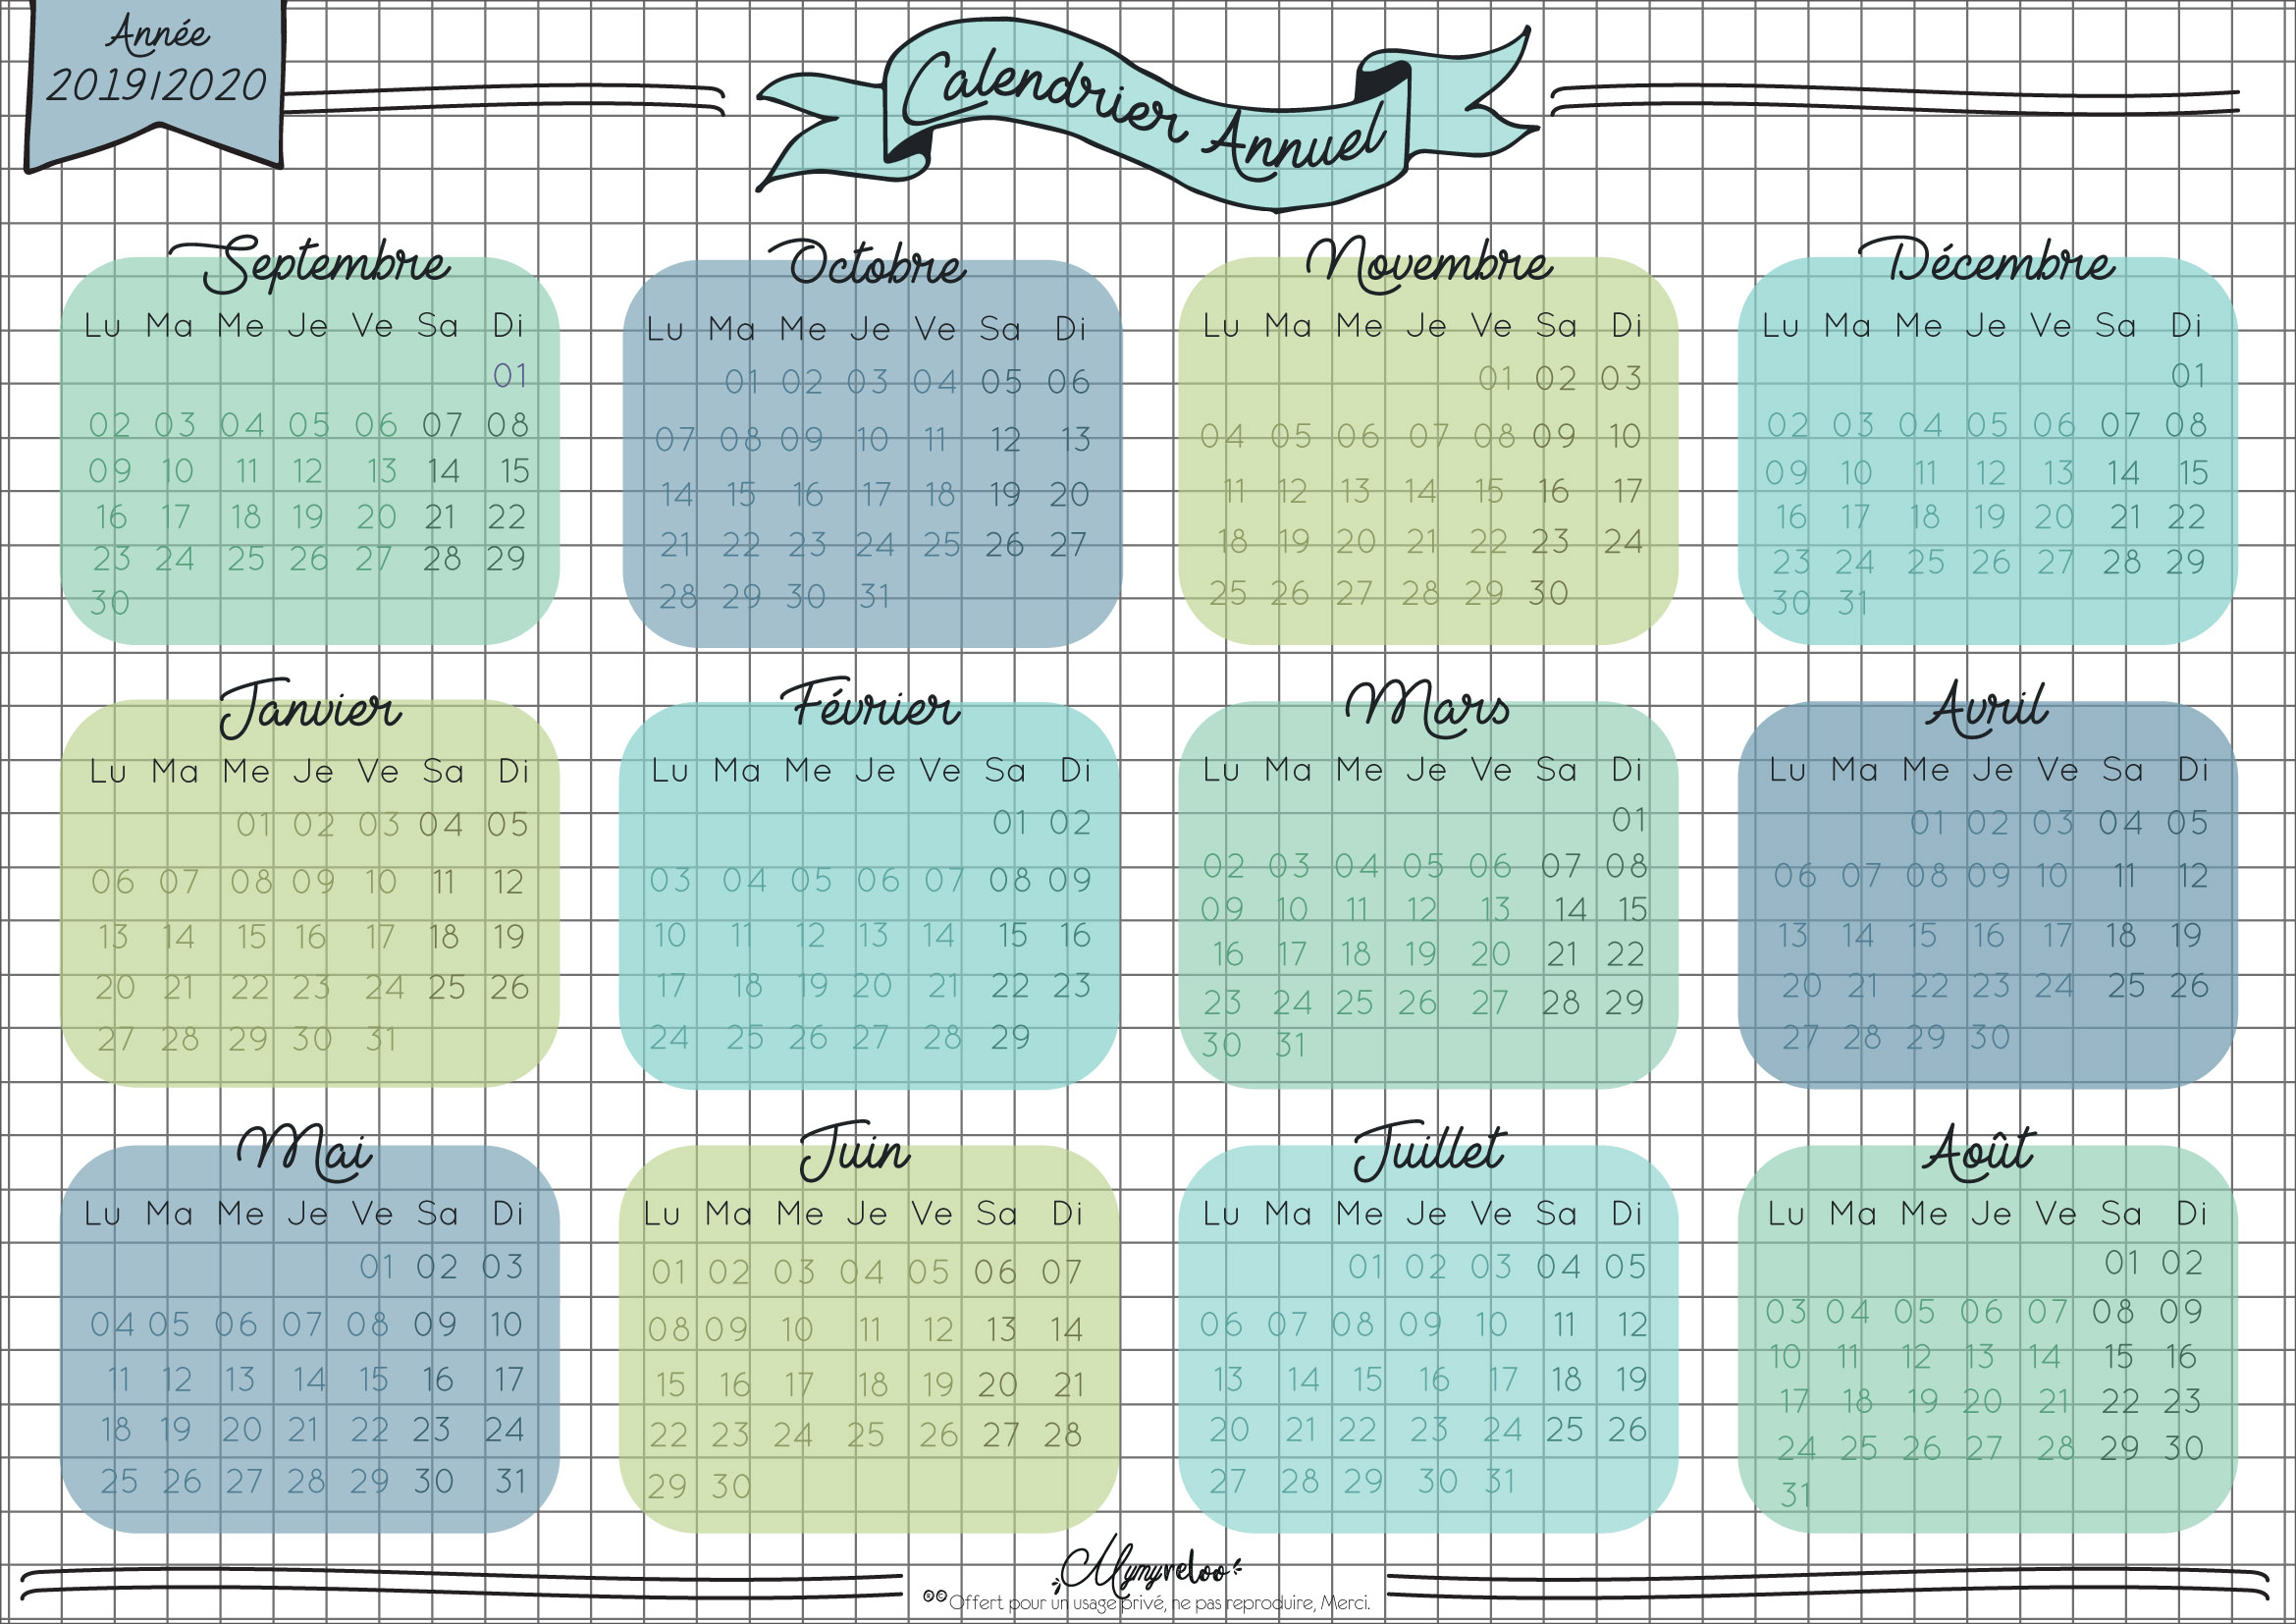 Calendrier Pro A 2020 2019.Goodies Une Rentree 2019 2020 Bien Organisee Calendrier